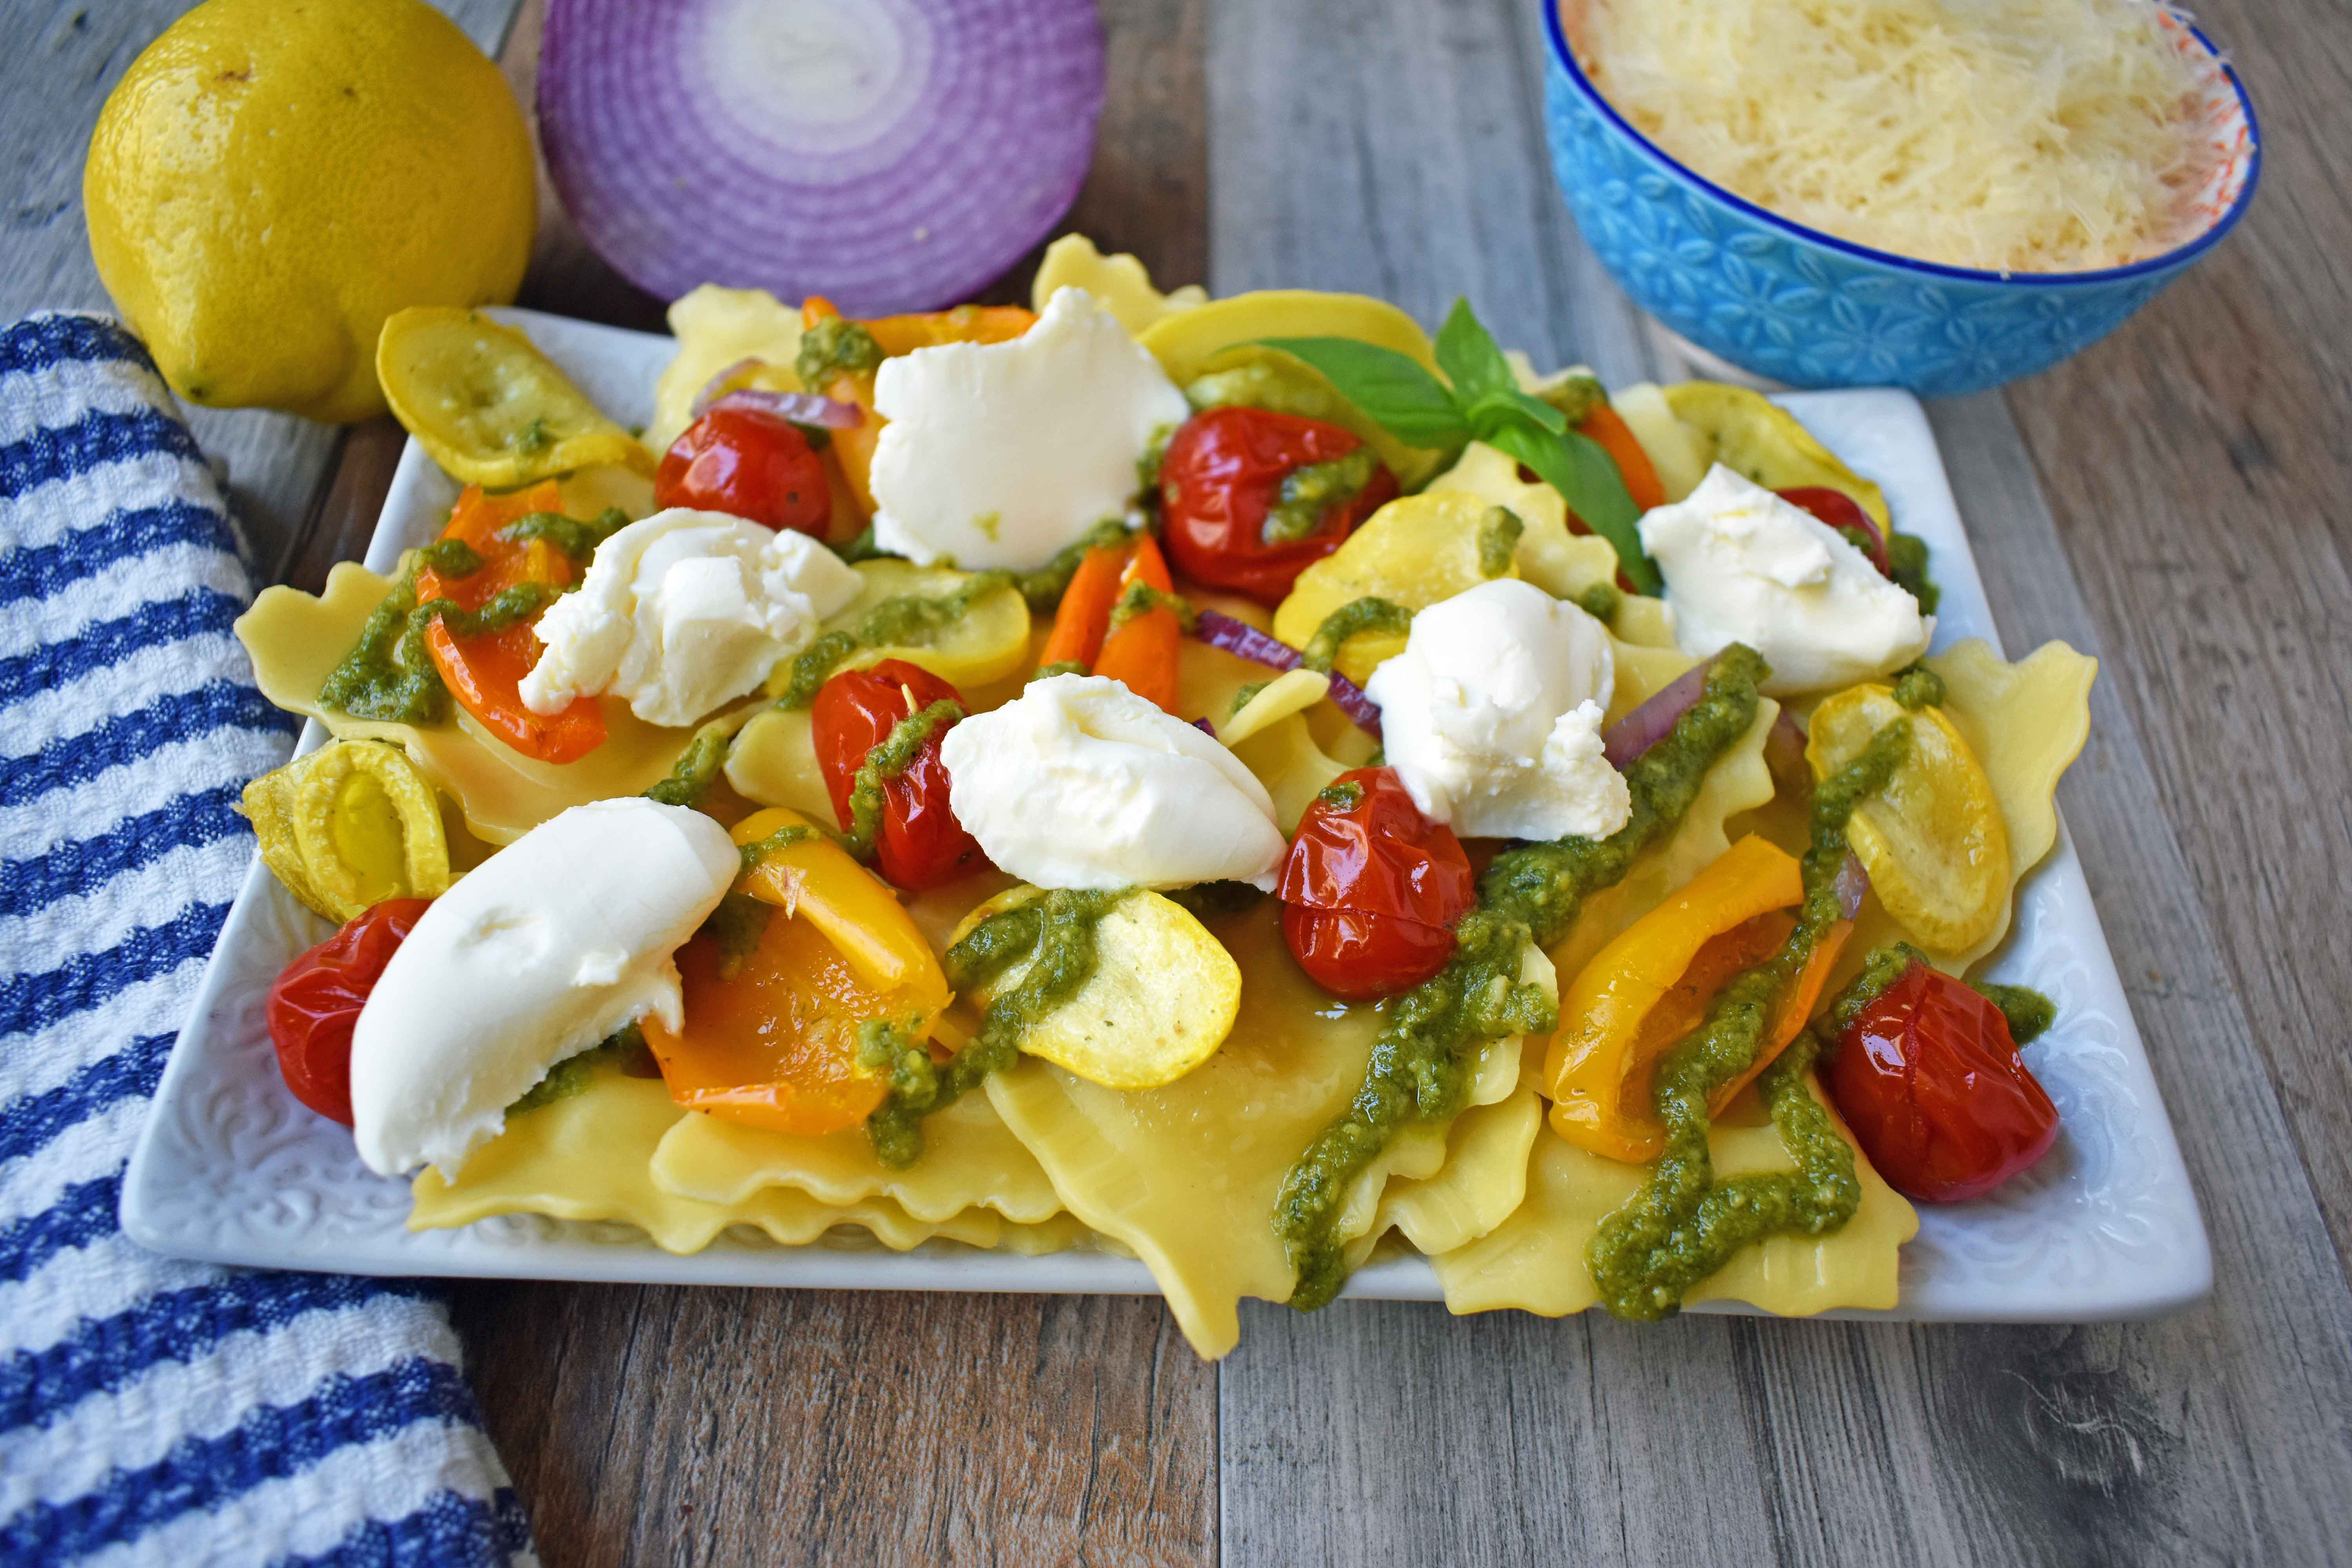 Summer Roasted Vegetable Pesto Ravioli by Modern Honey. This light and fresh summer pasta dish is made with fresh ravioli, tender roasted vegetables, basil pesto sauce, and a touch of mascarpone cheese. A vibrant and healthy pasta dish. www.modernhoney.com